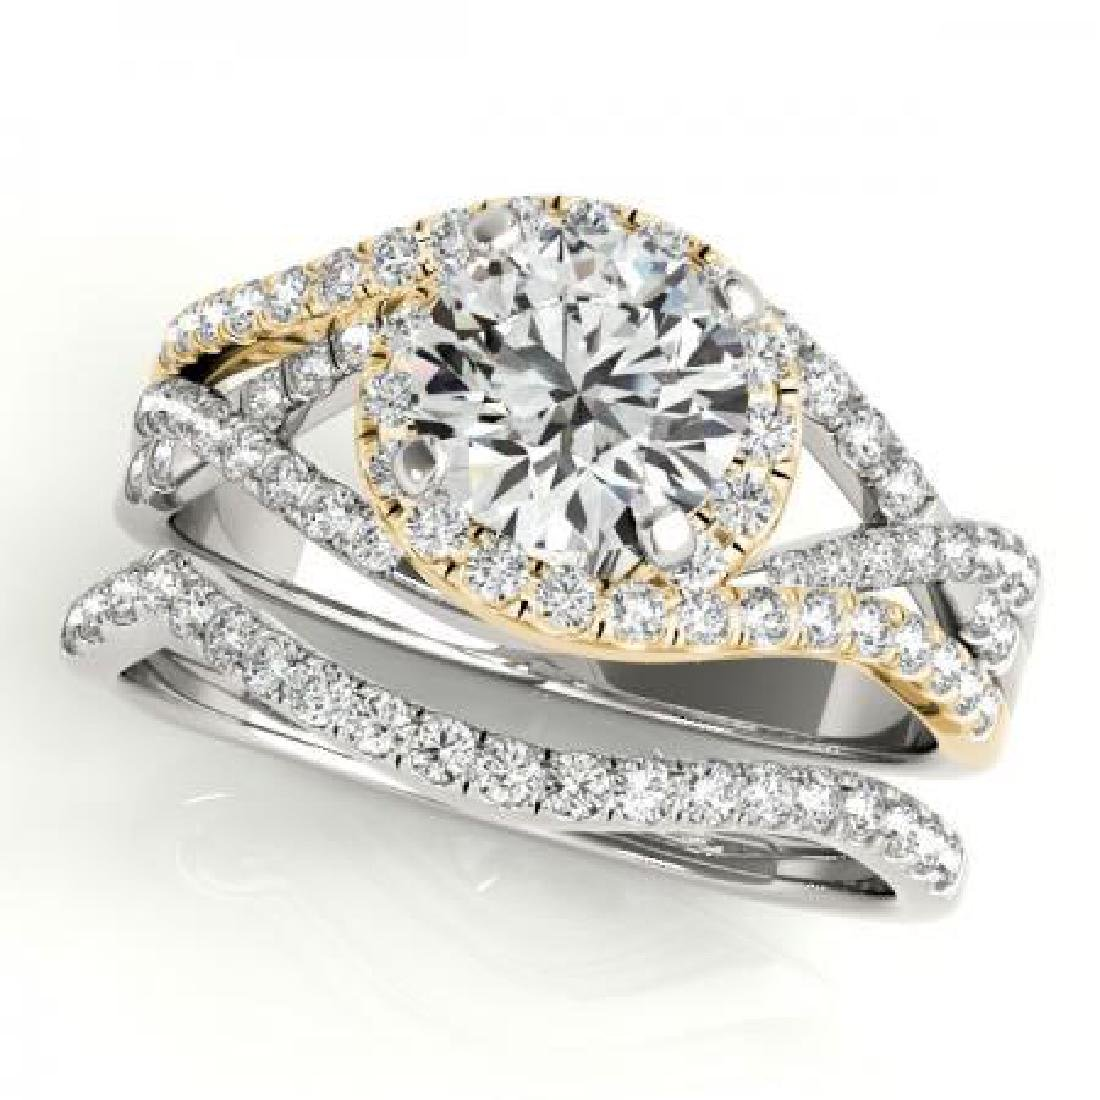 CERTIFIED 18KT TWO TONE GOLD 1.01 CT G-H/VS-SI1 DIAMOND